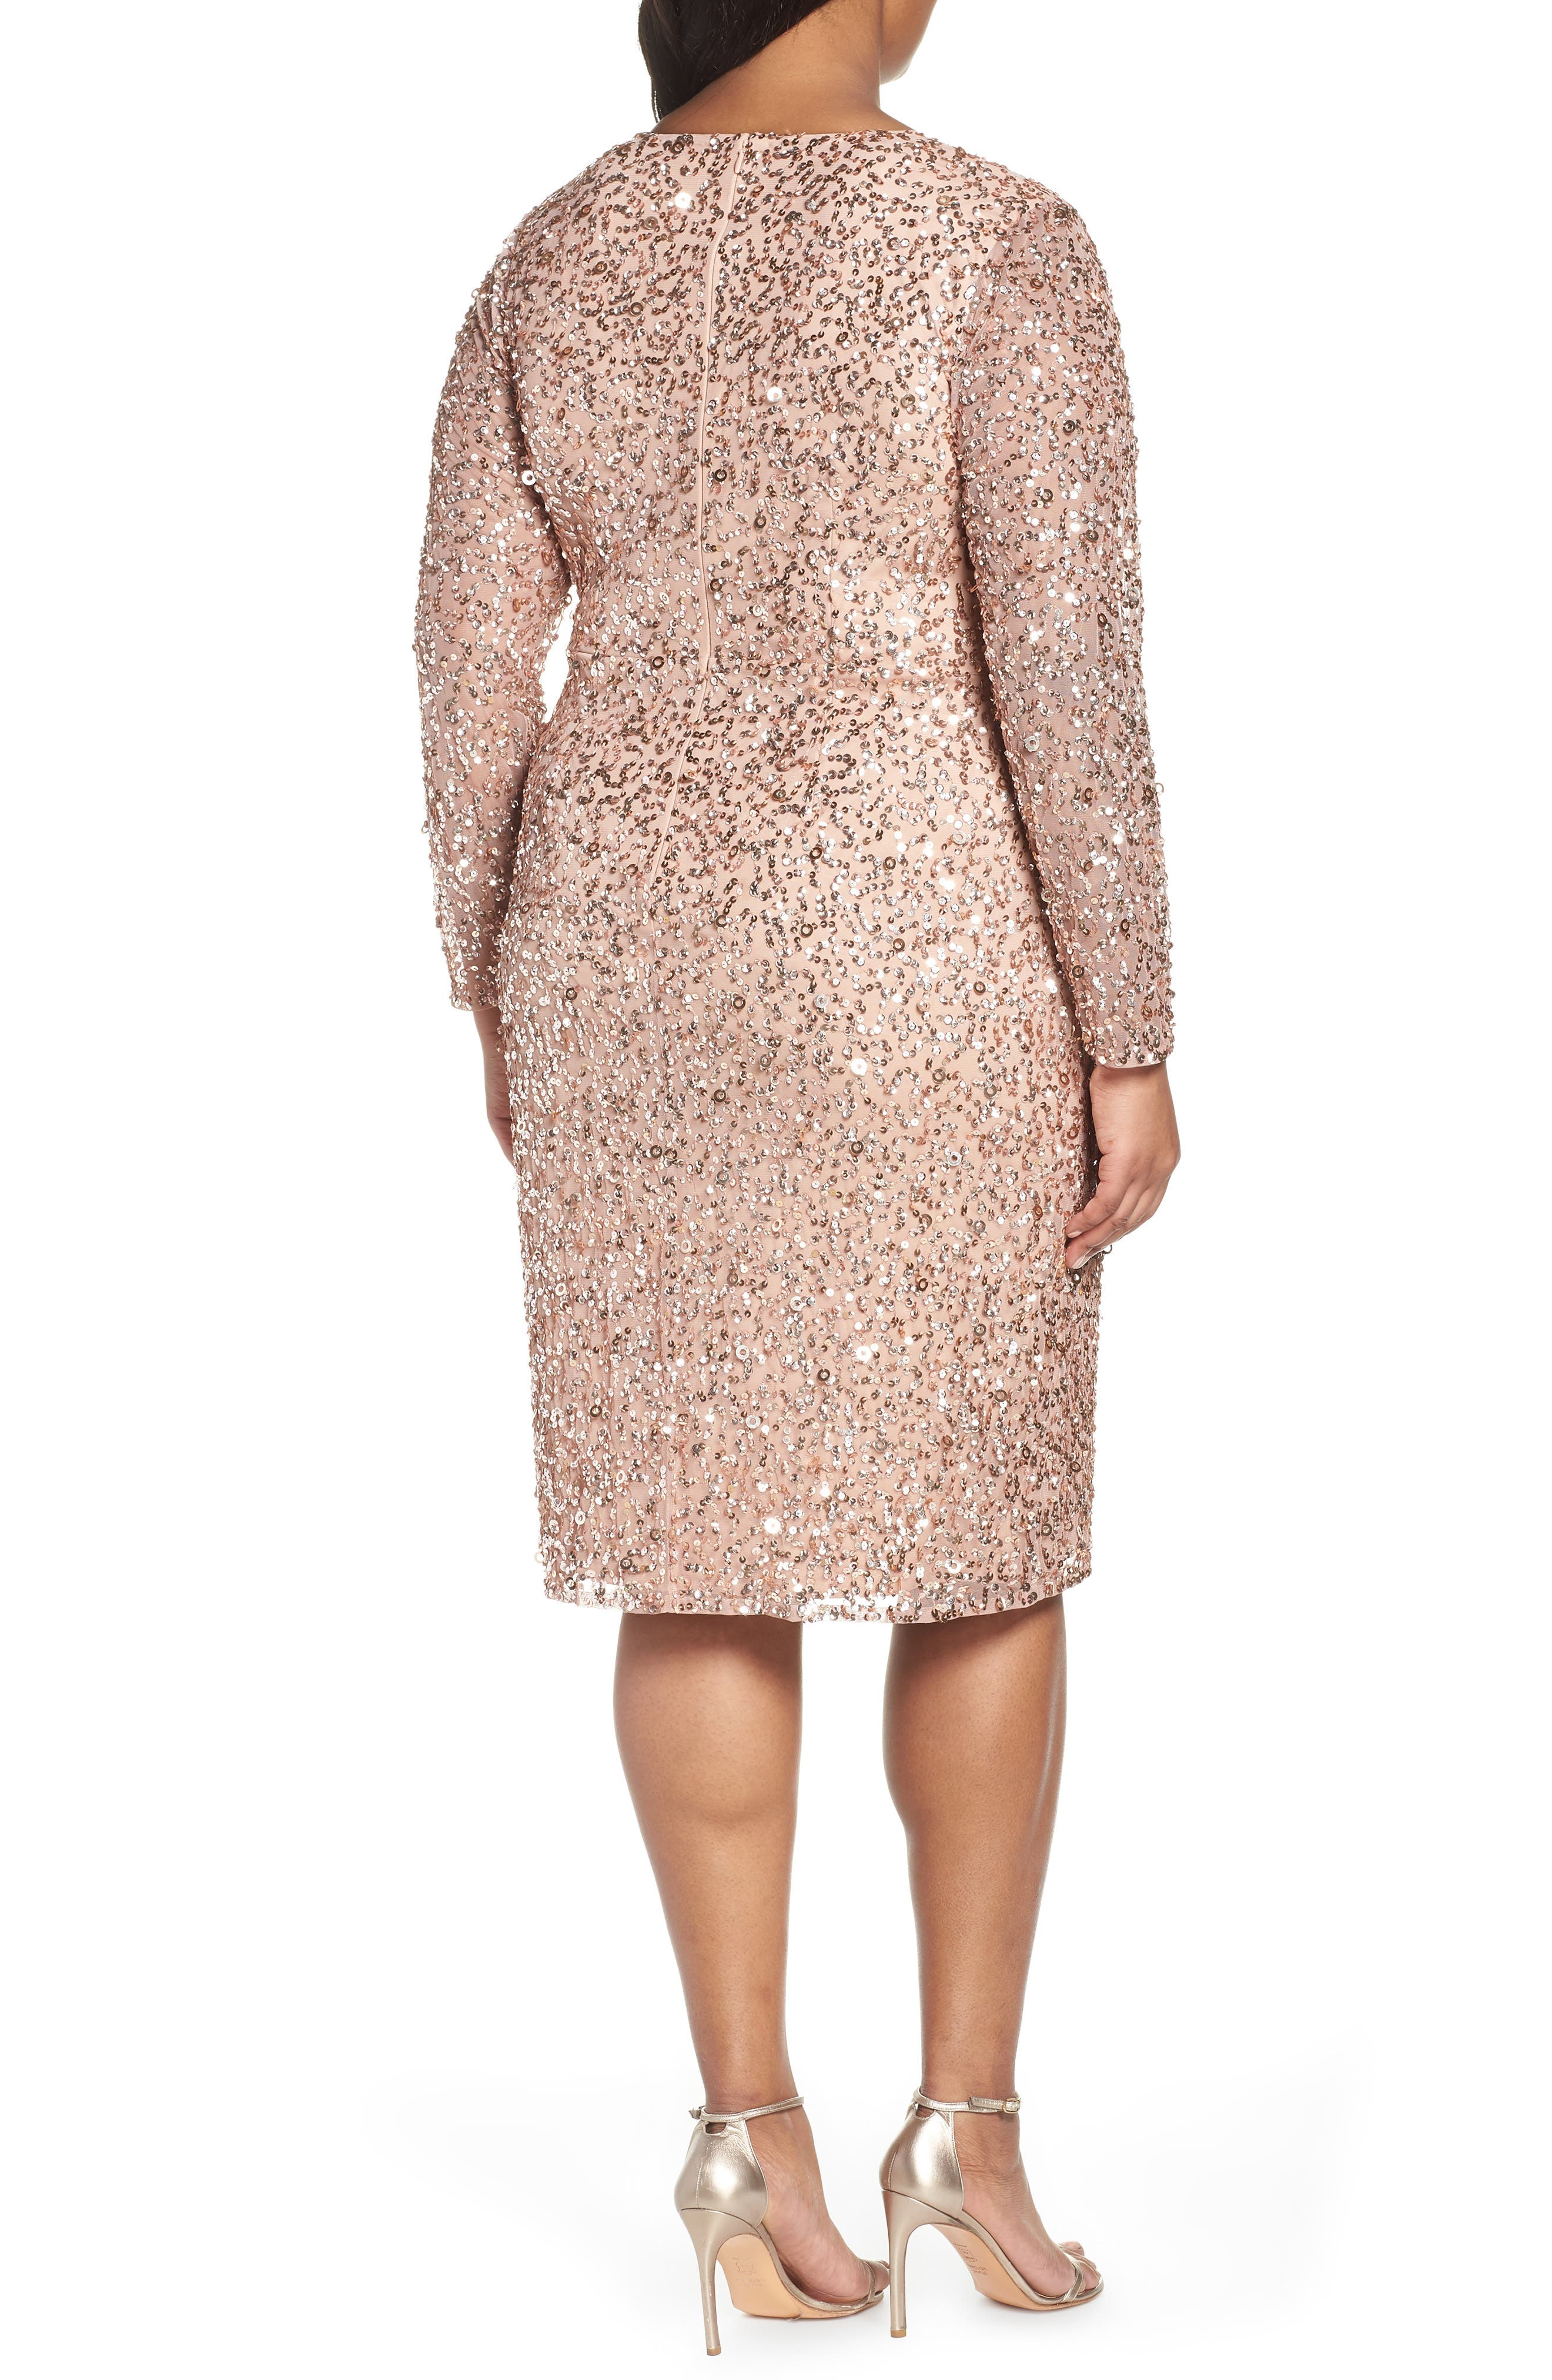 ADRIANNA PAPELL,                             Beaded Mesh Cocktail Dress,                             Alternate thumbnail 2, color,                             ROSE GOLD